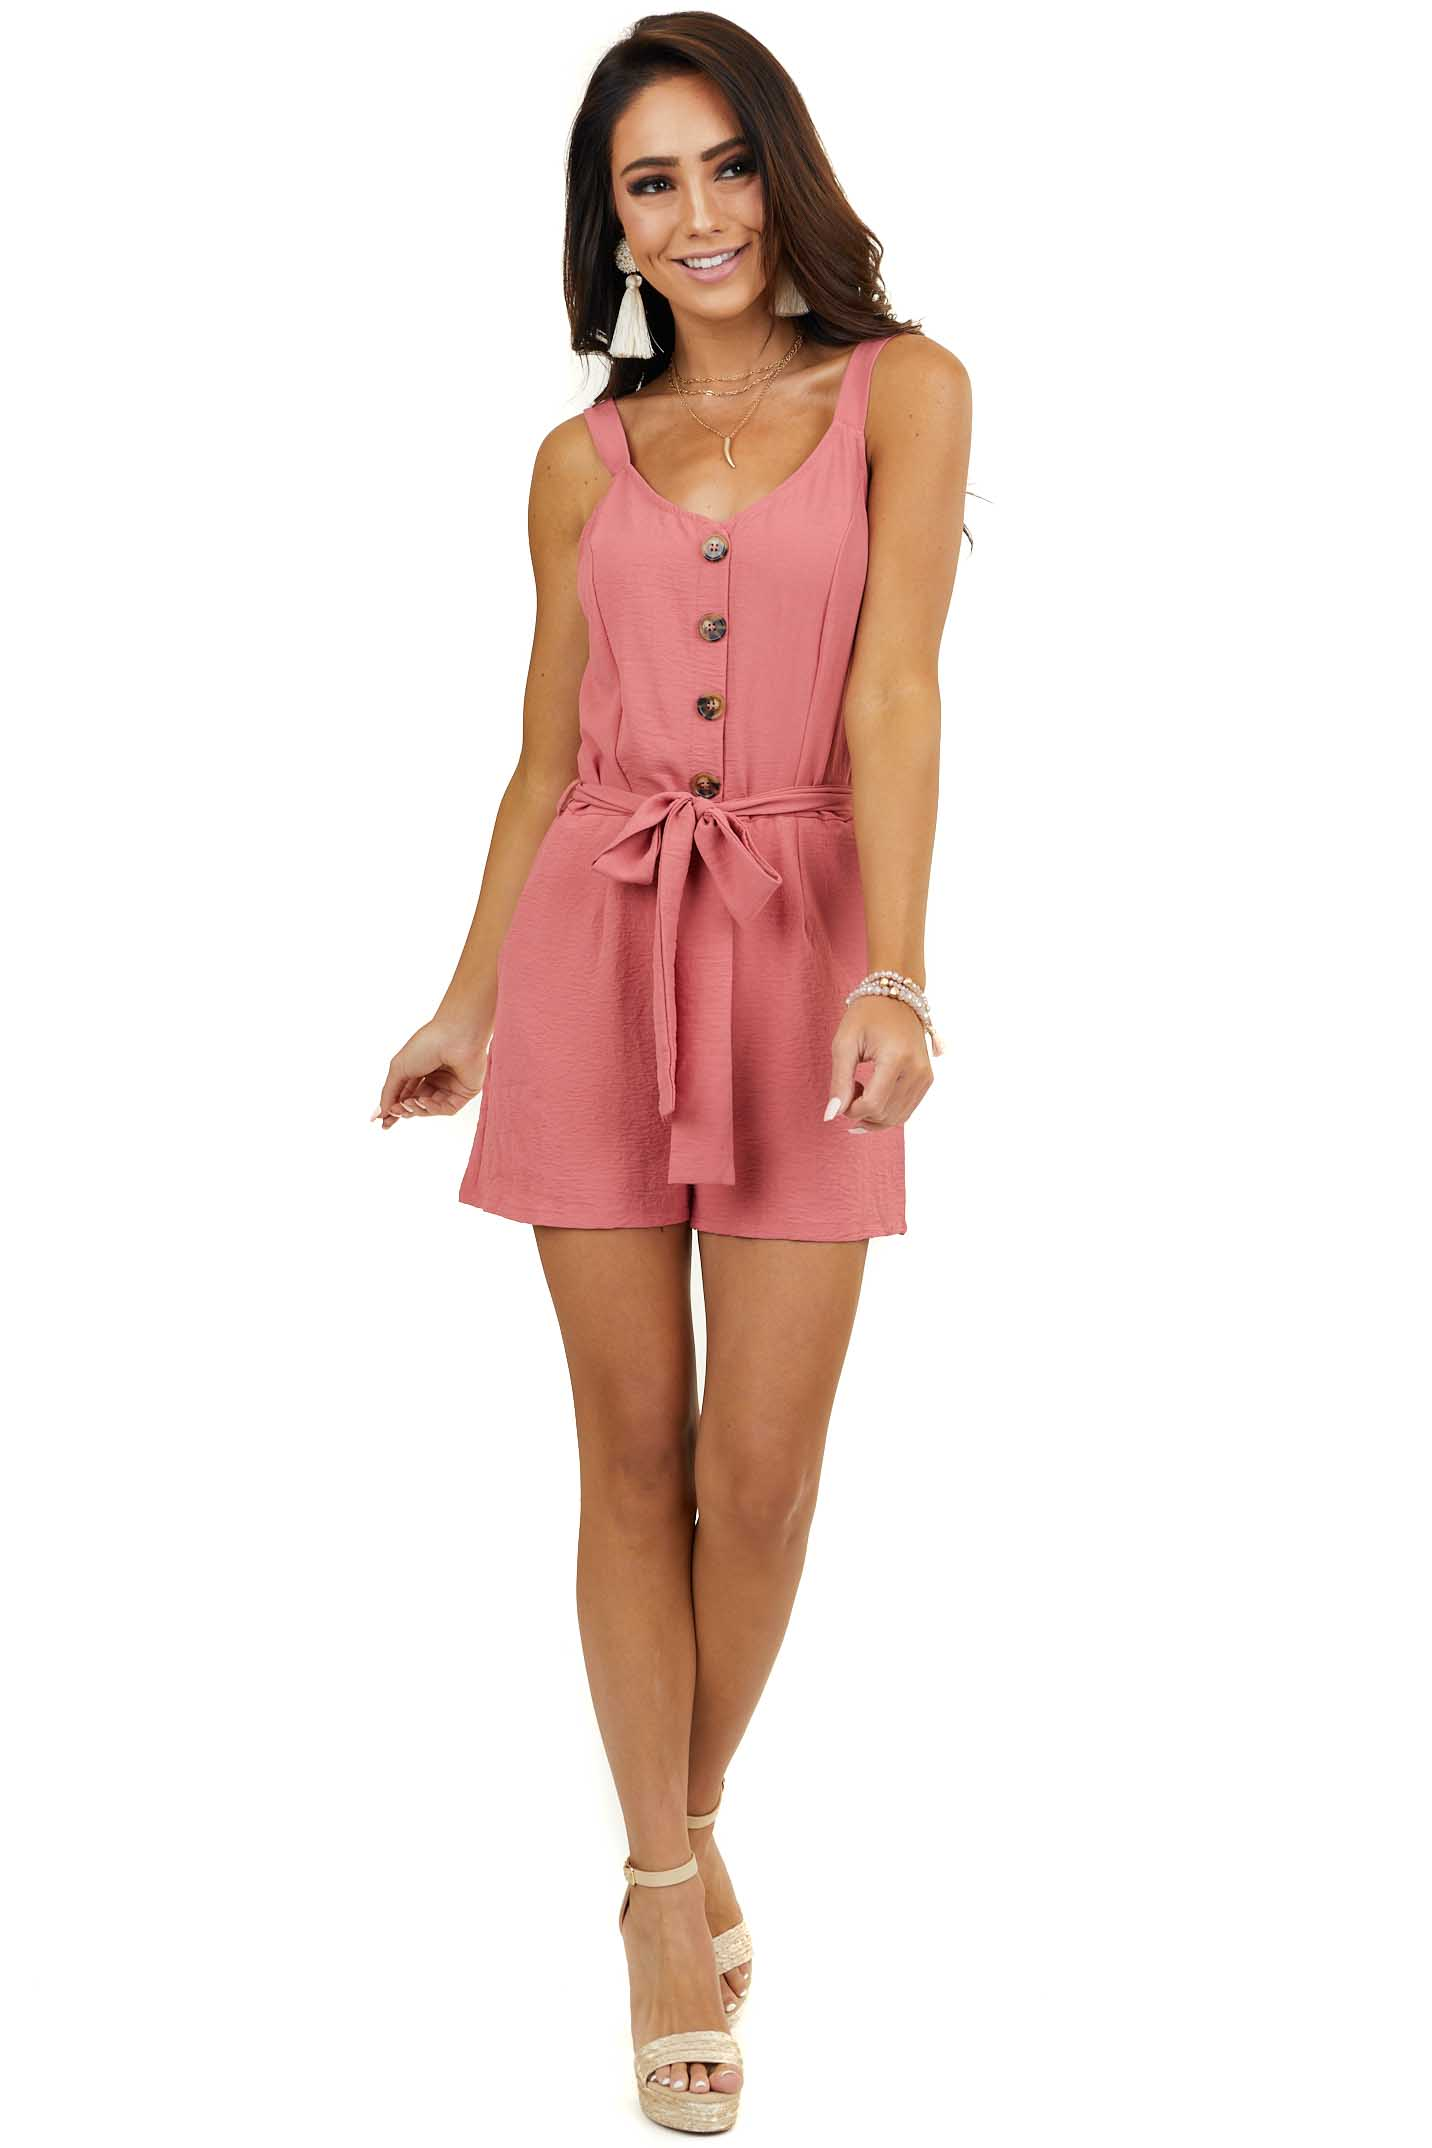 Dark Coral Button Down Romper with Waist Tie and Pockets